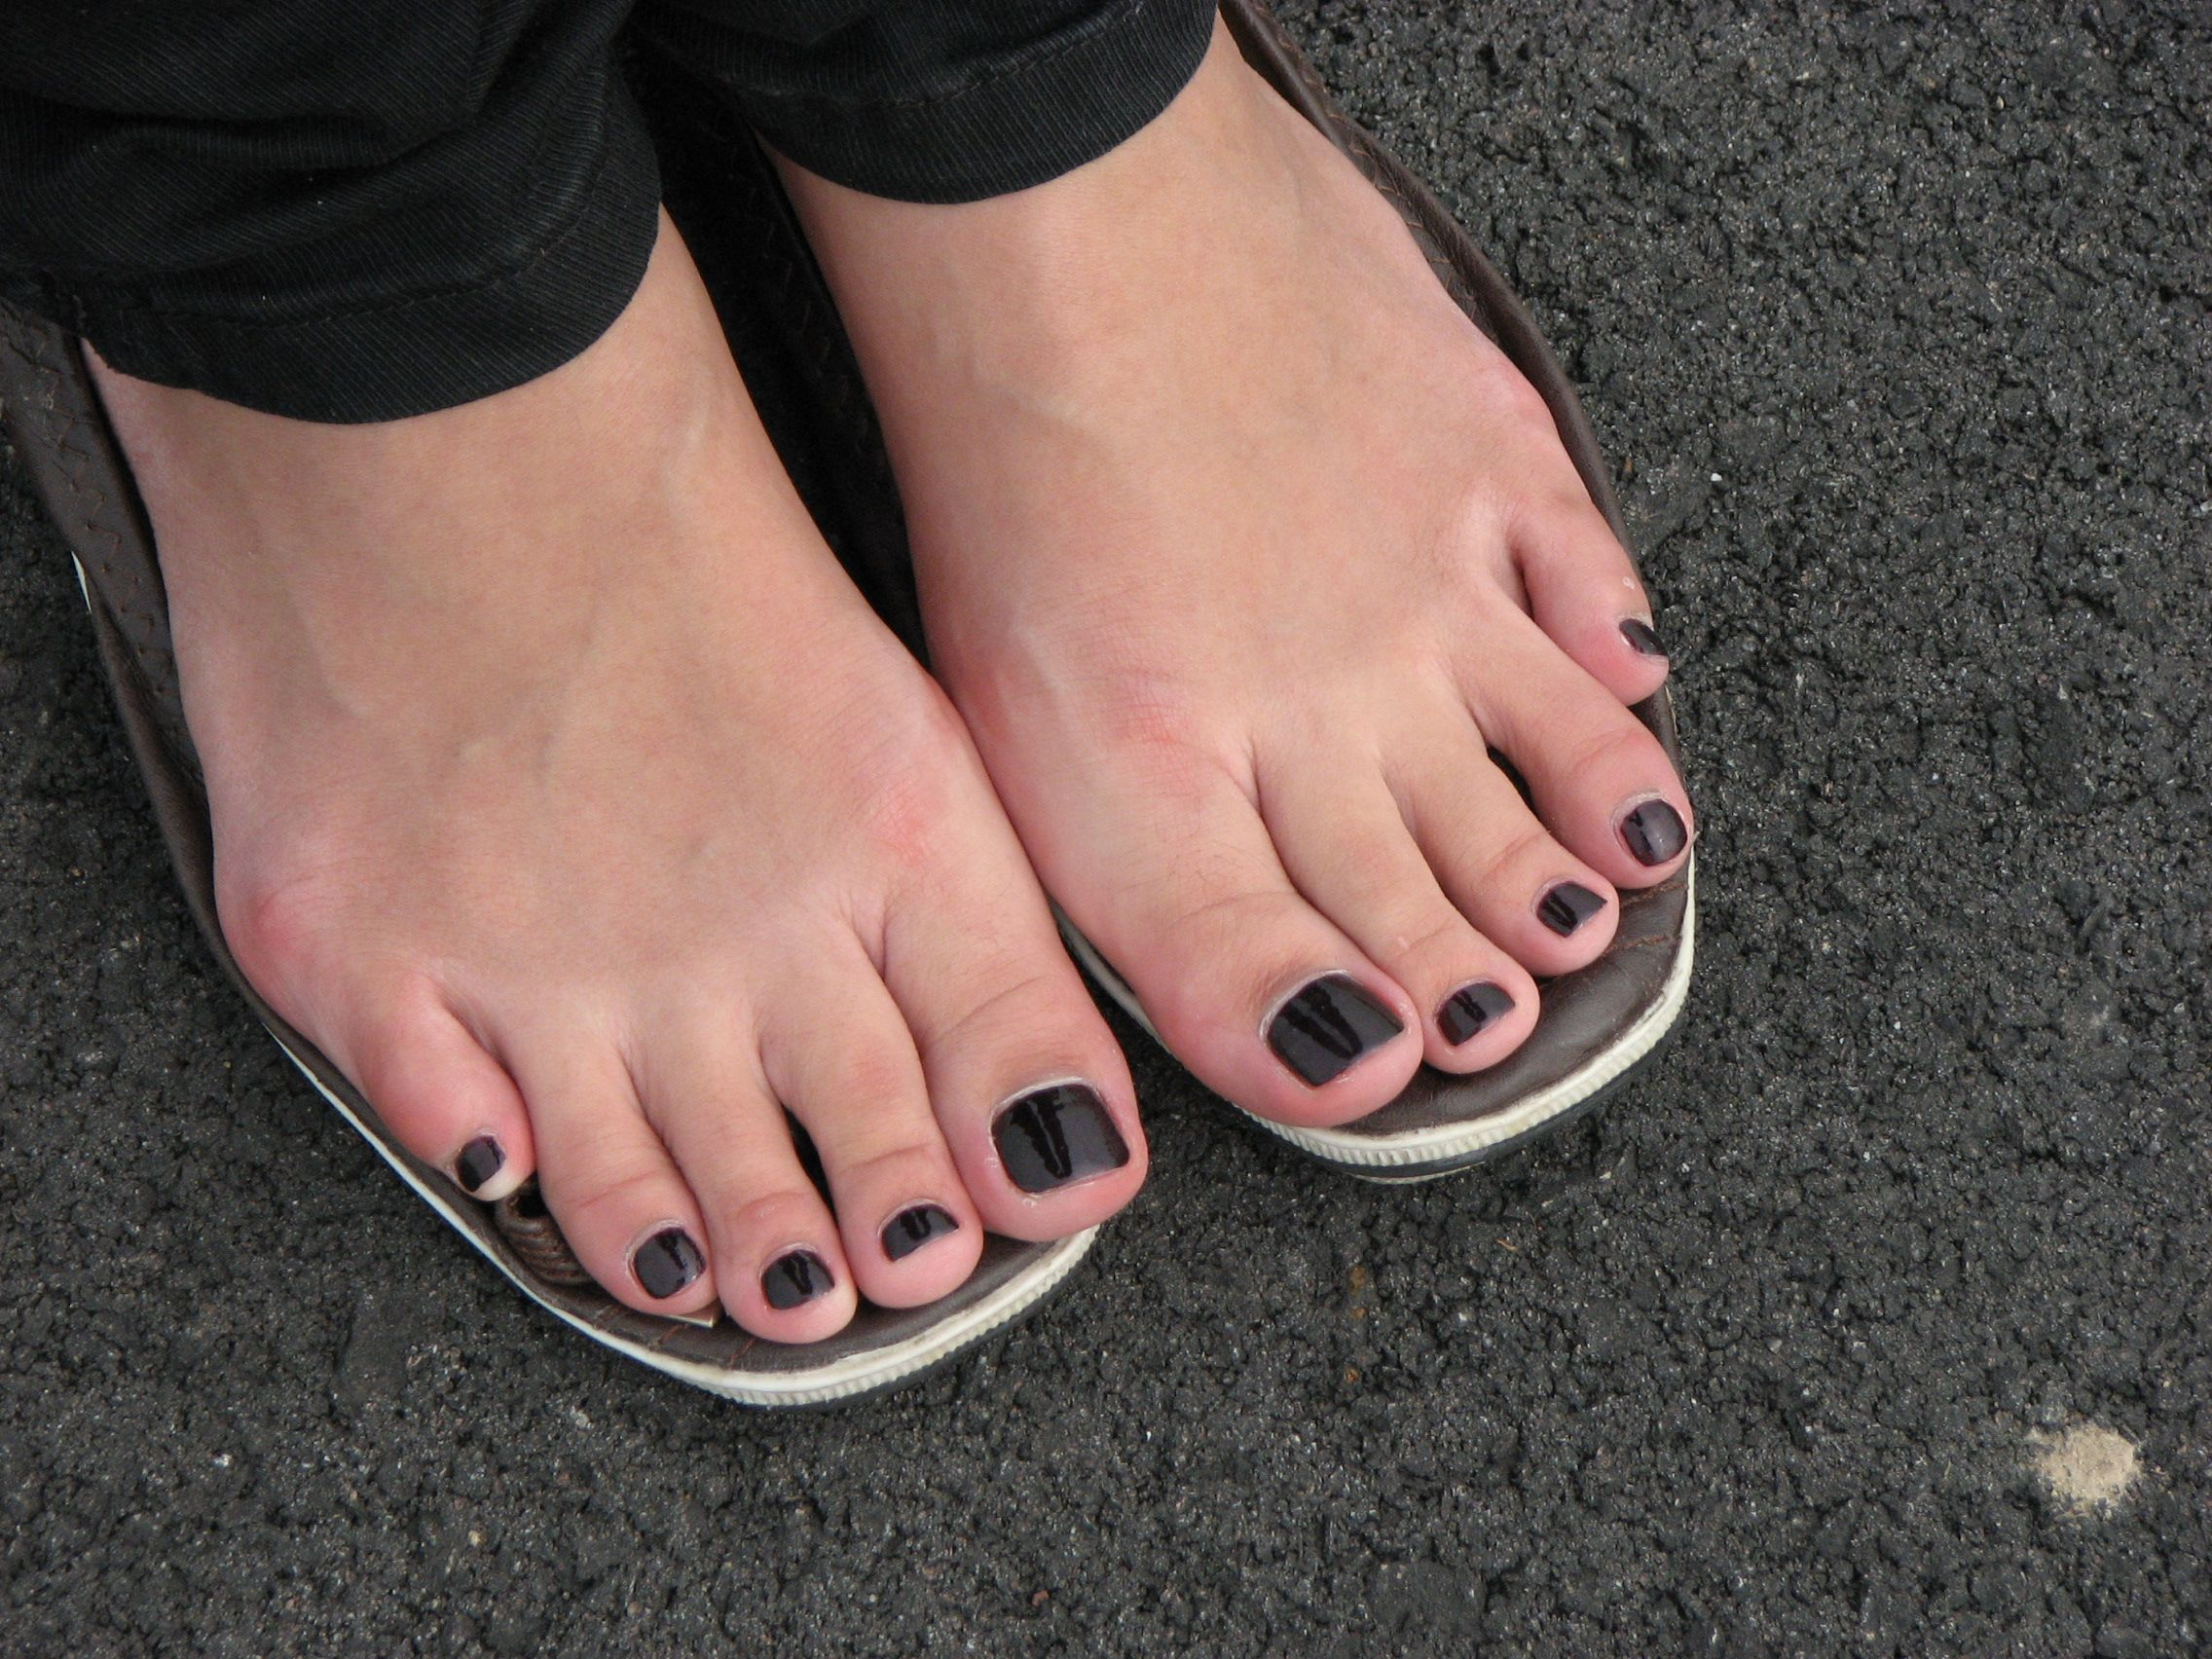 Sexy Toes Feet 100